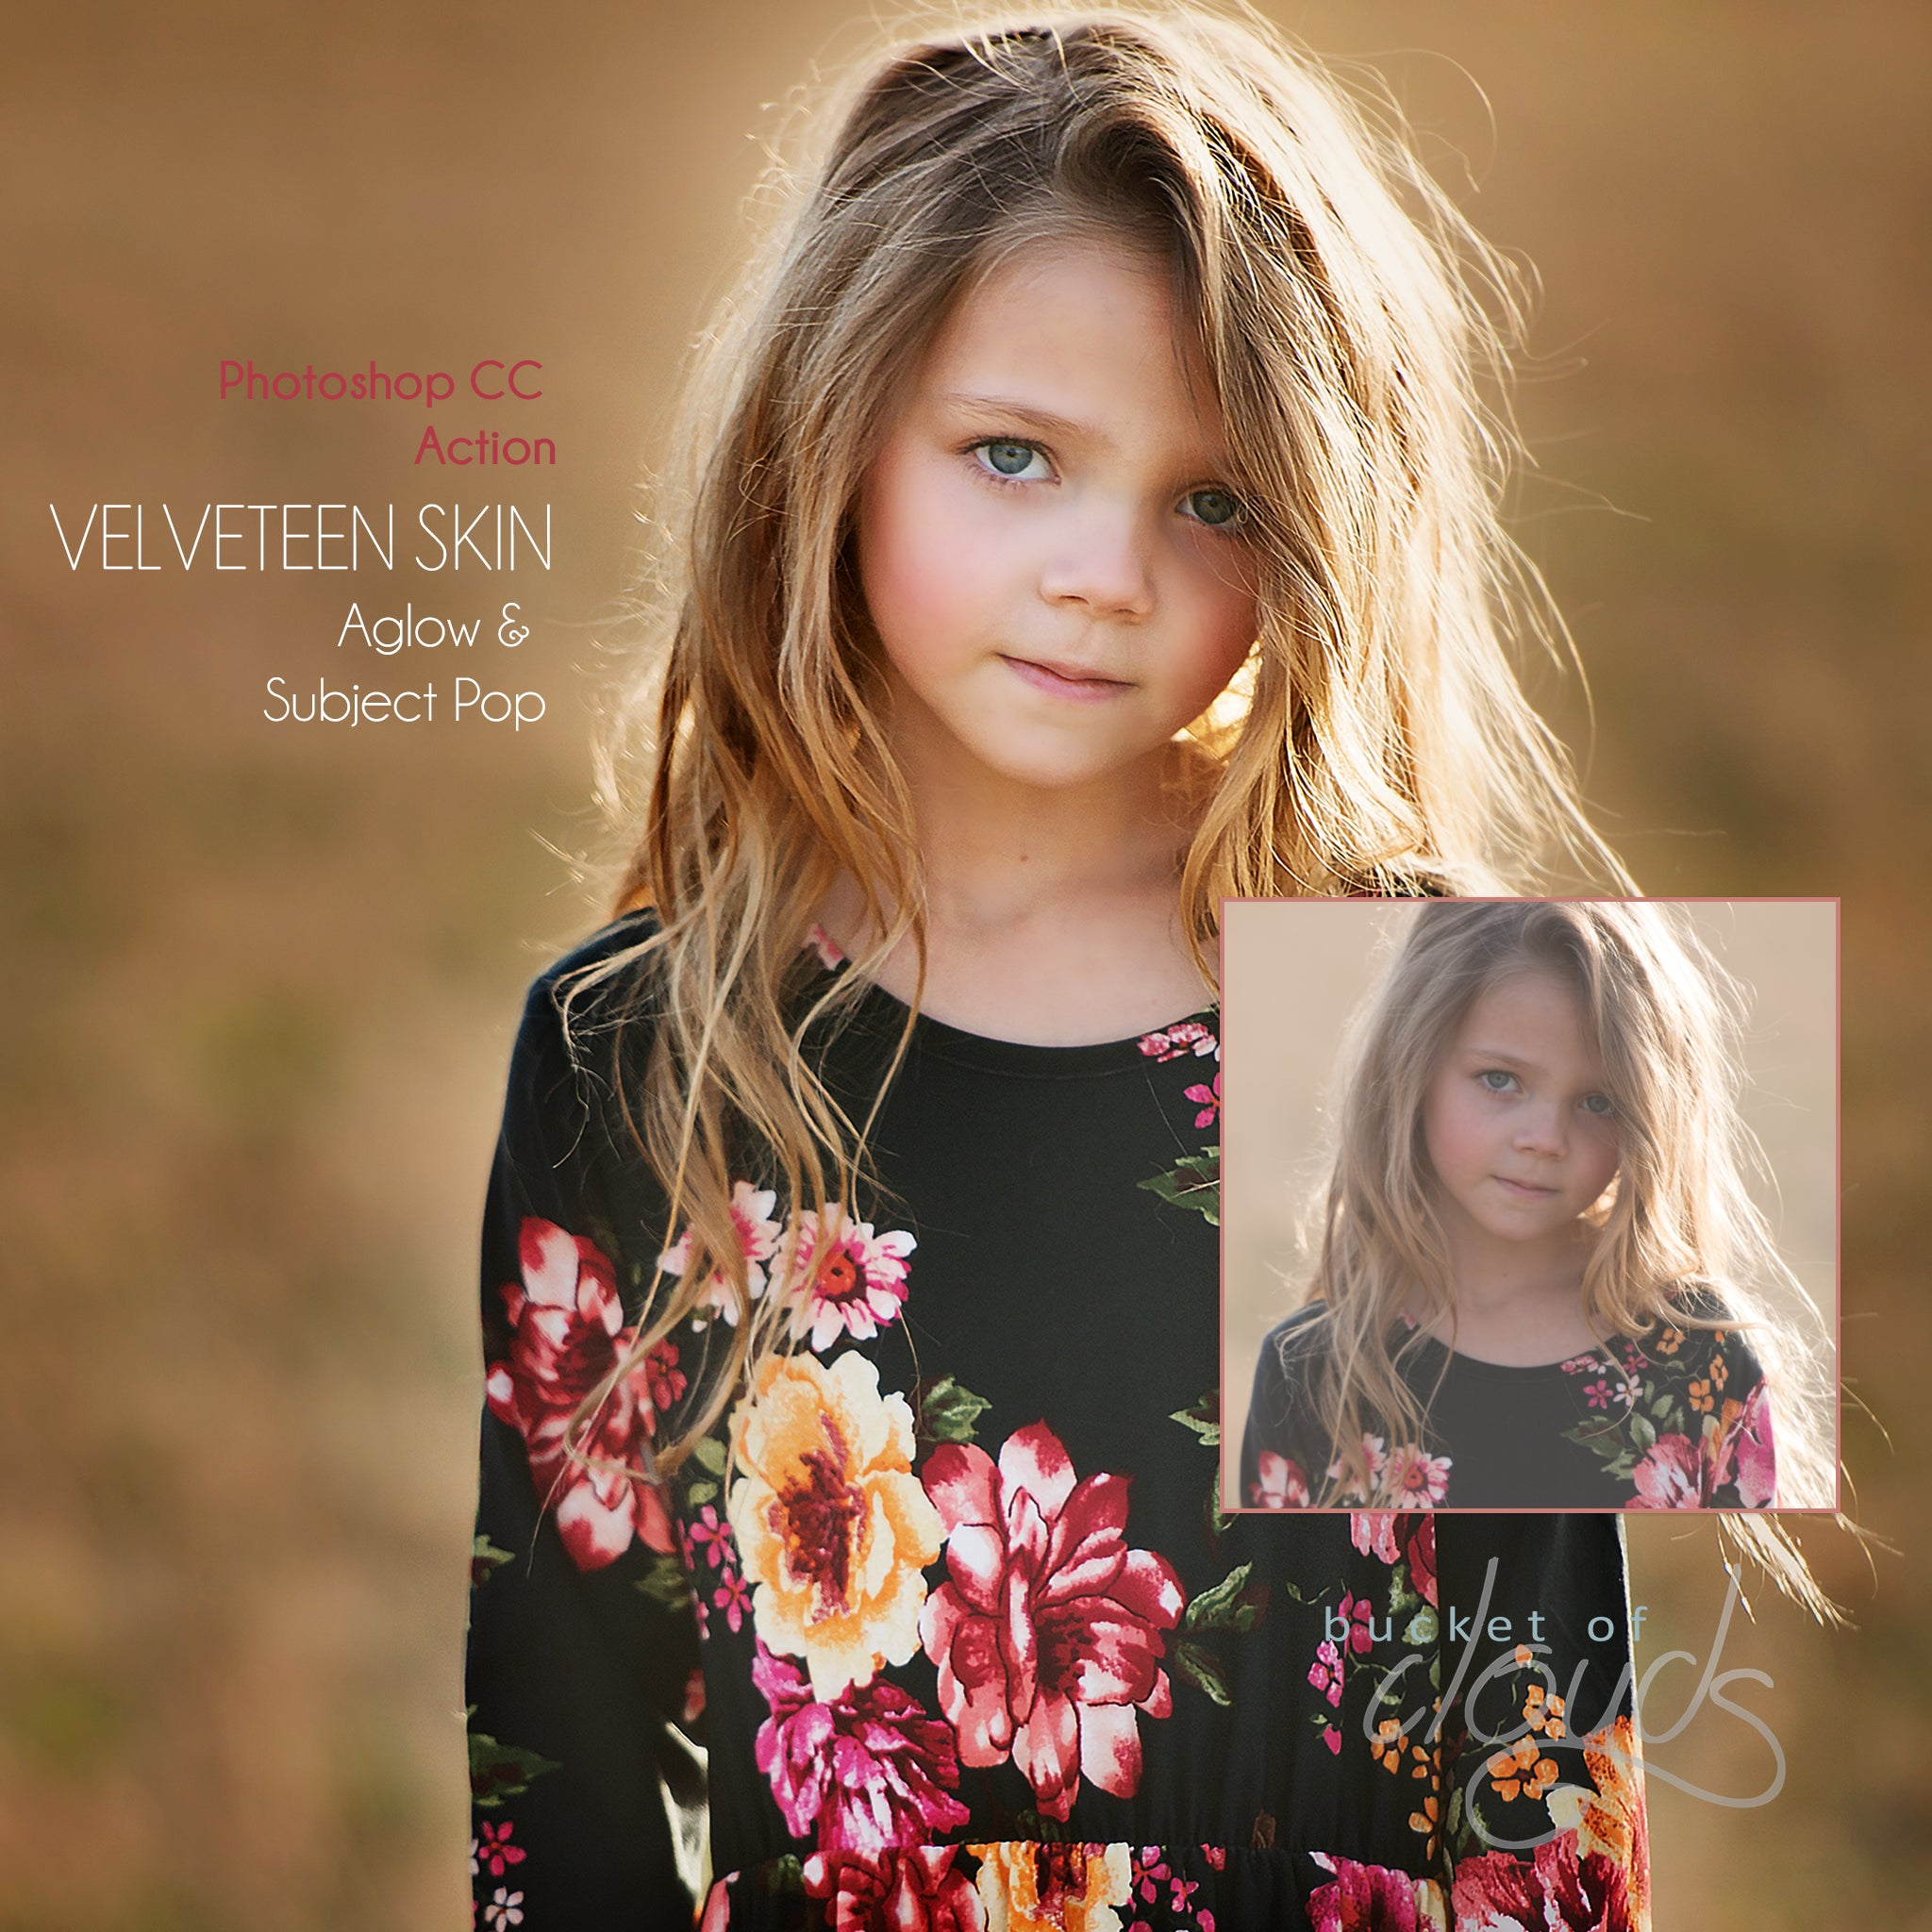 My First Photoshop CC Action is Released! | Velveteen Skin Aglow and Subject Pop